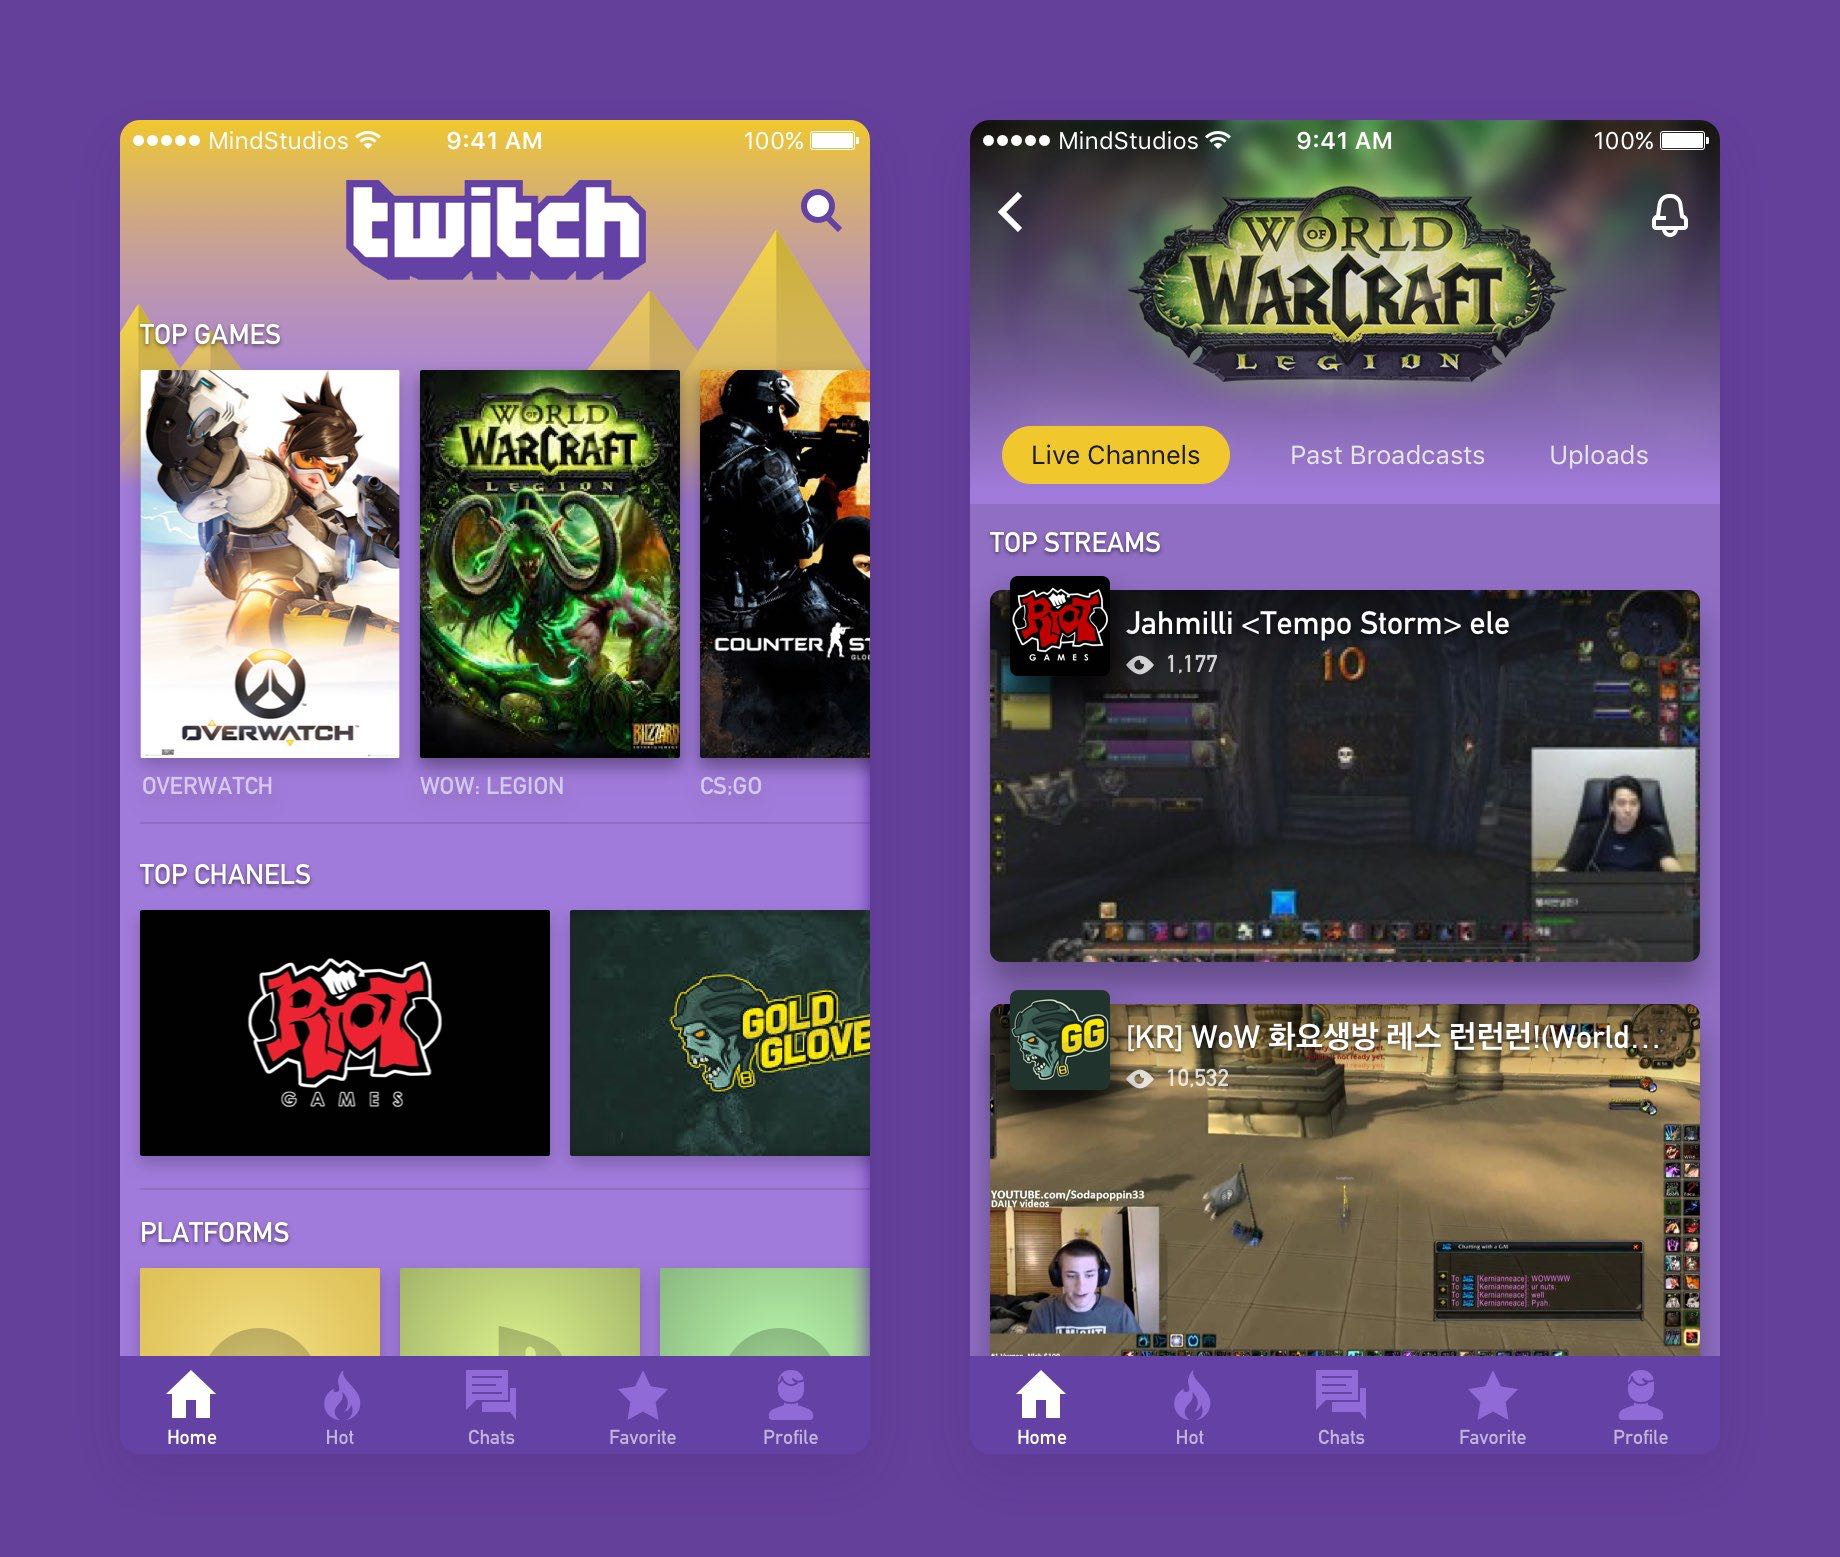 Twitch.tv re-designed concept